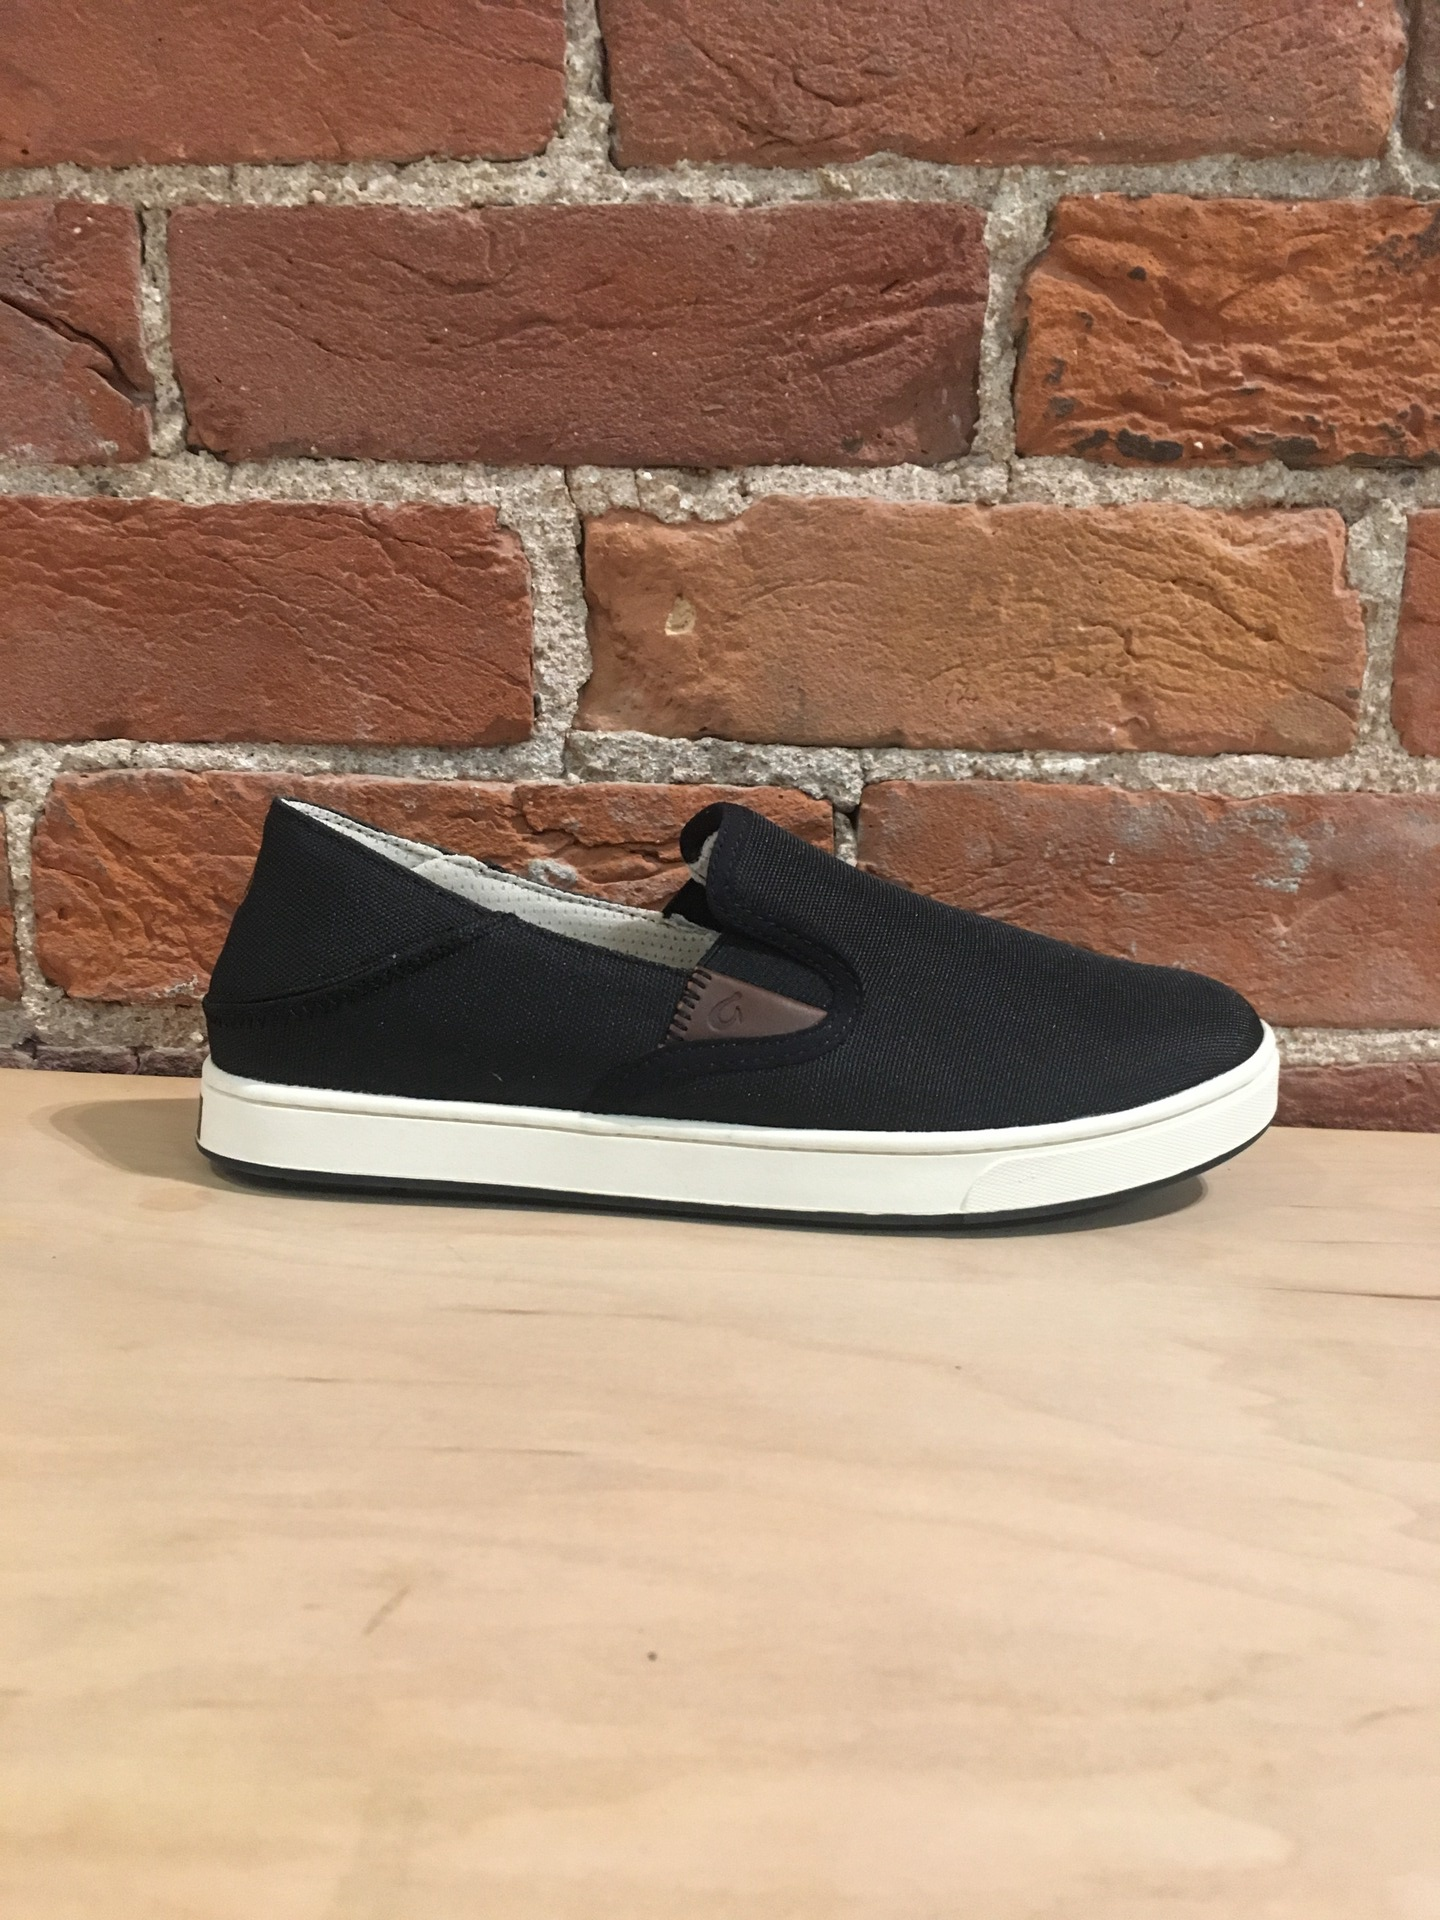 OLUKAI - KAHU IN BLACK/OFF WHITE